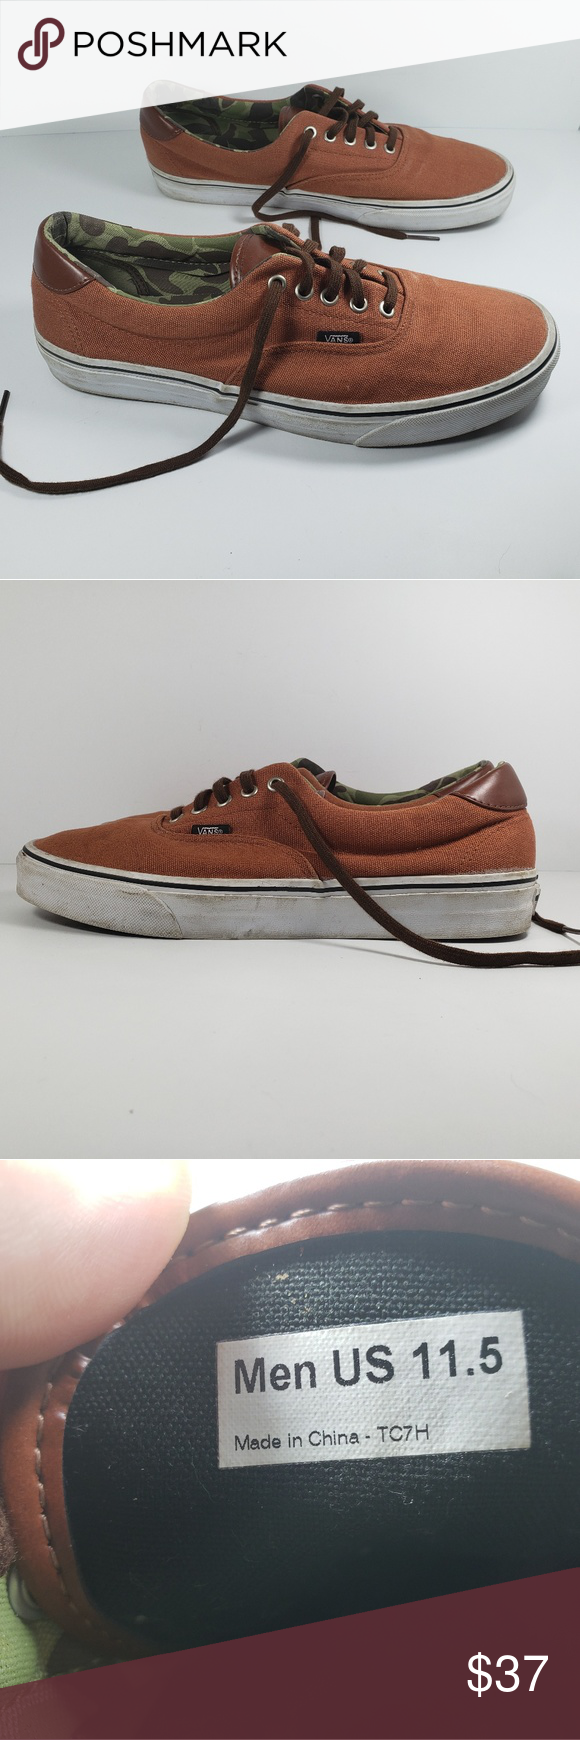 f158513244 VANS OFF THE WALL TC7H Sneakers Mens Sz 11.5 VANS OFF THE WALL TC7H  Sneakers Orange with Brown Faux Leather Trim Mens Sz 11.5. Please see  pictures for an ...